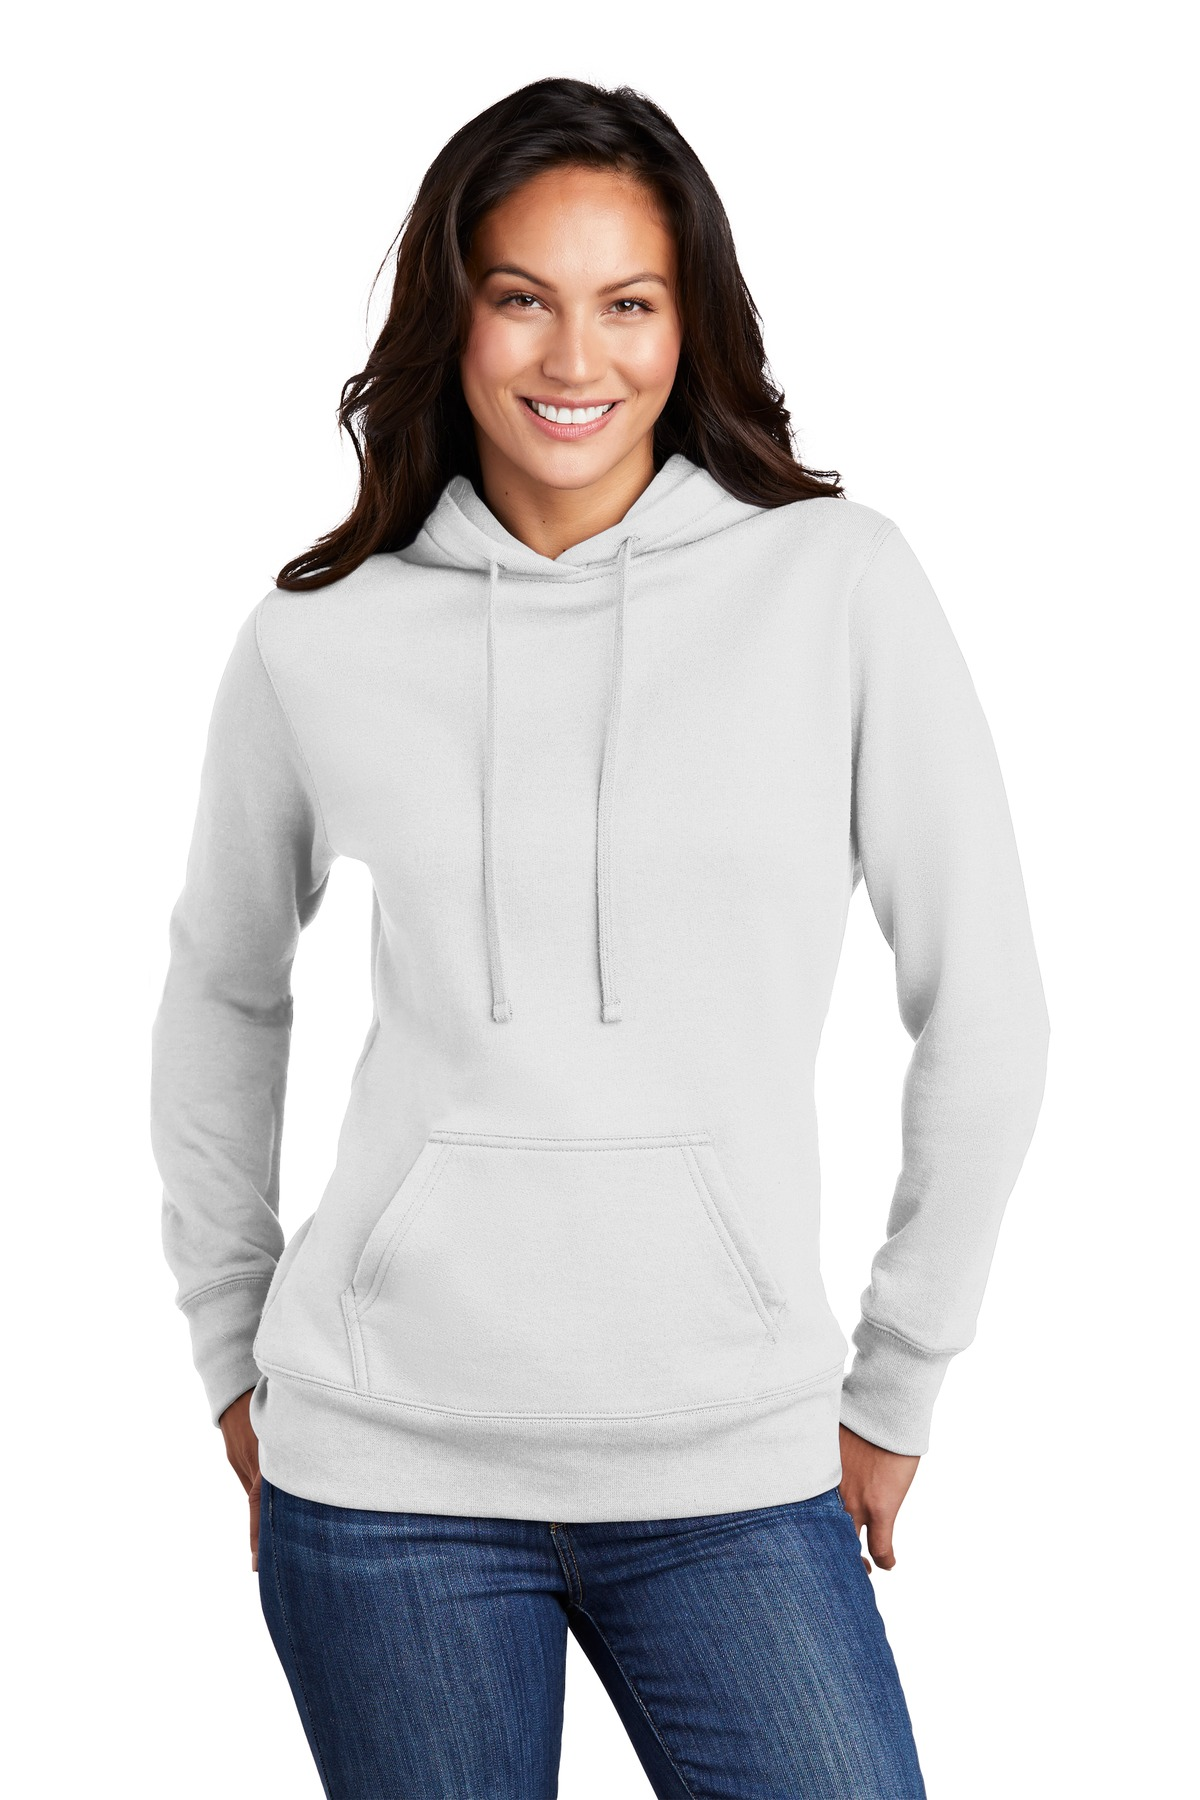 Port & Company  ®  Ladies Core Fleece Pullover Hooded Sweatshirt LPC78H - White